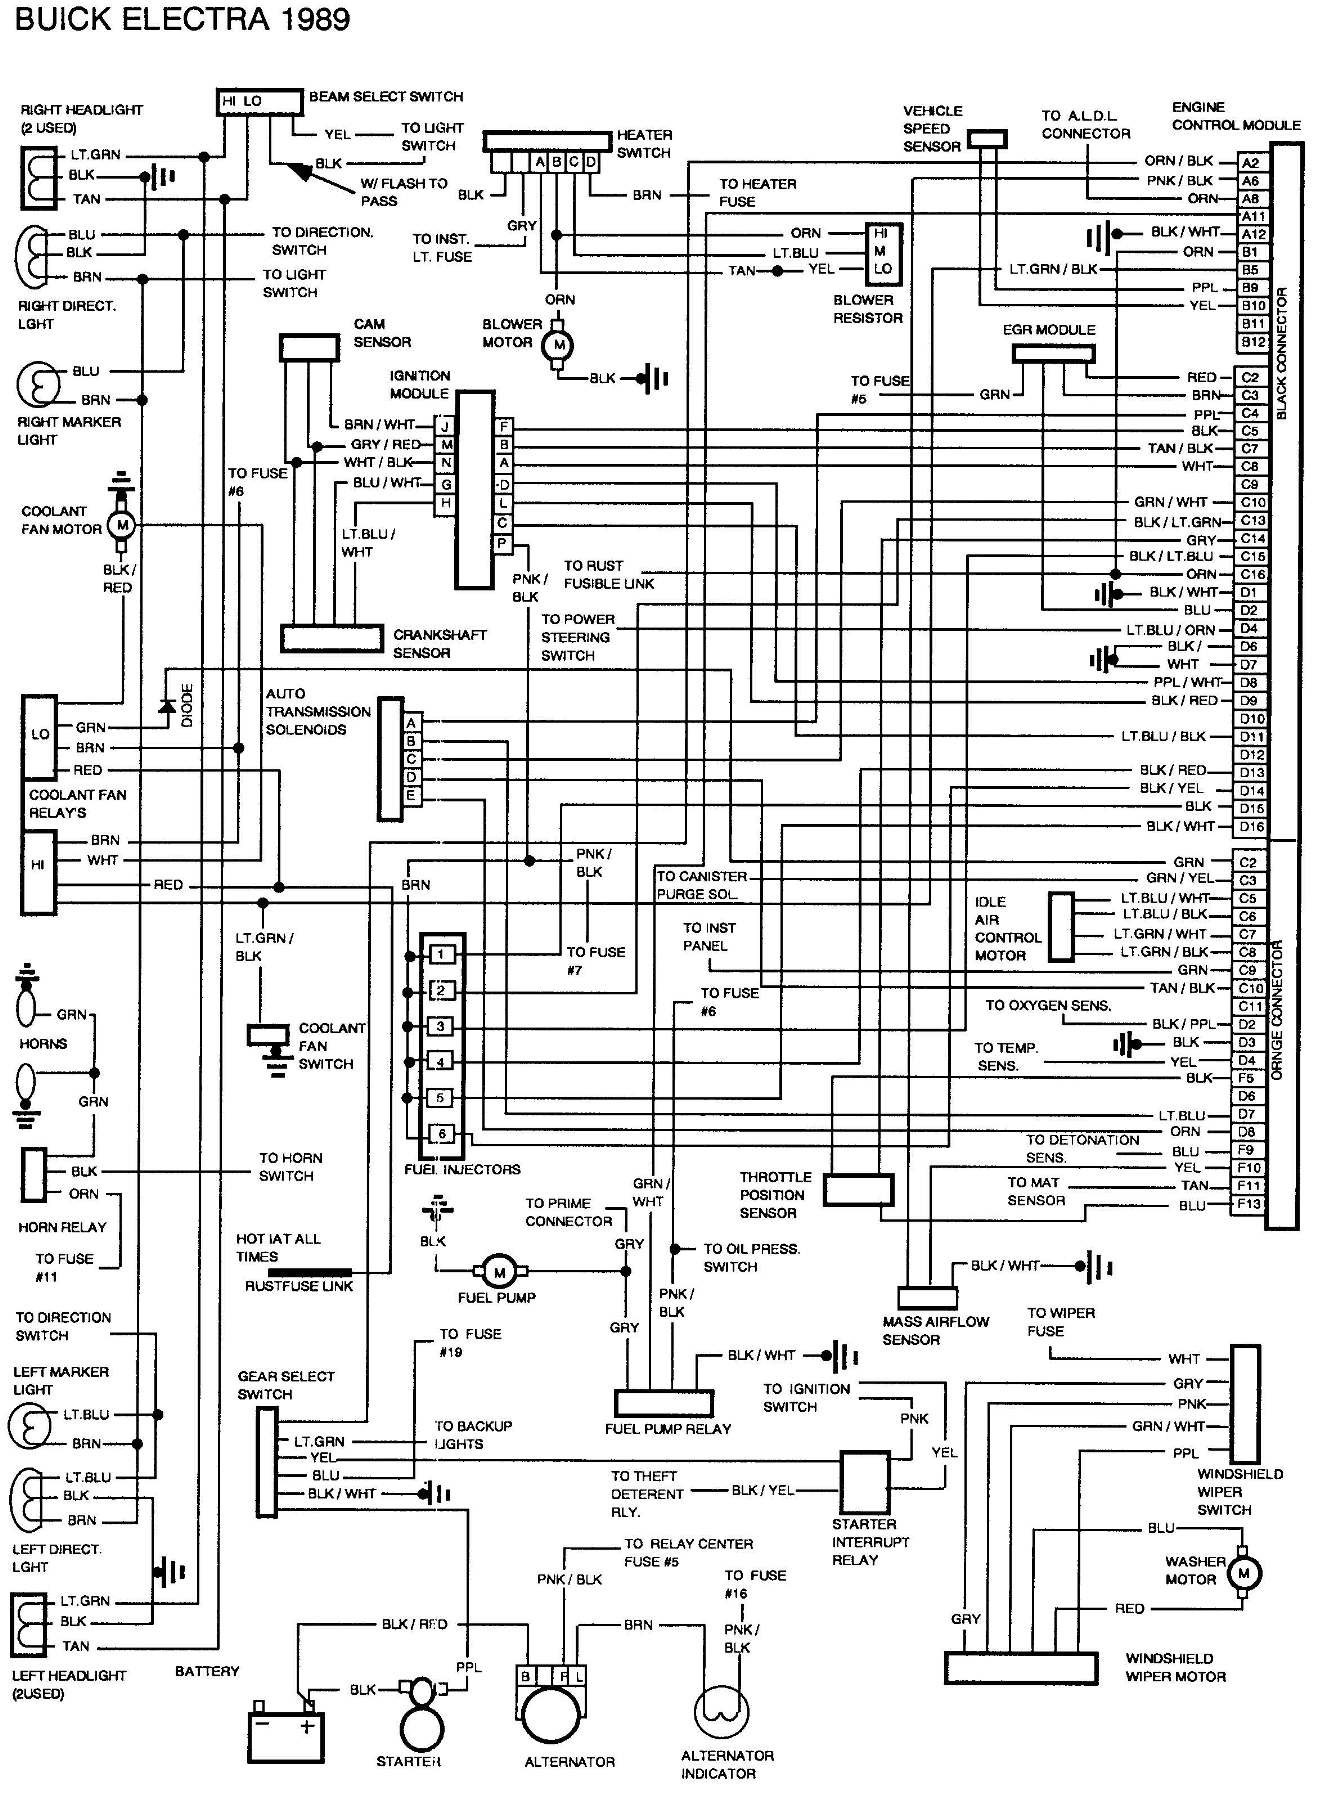 Ford El Wiring Diagram Stereo - Auto Electrical Wiring Diagram Ford El Wiring Diagram Stereo on ford alternator diagrams, ford car radio wire diagrams, ford factory radio wire colors, ford brake light wiring diagram, ford power window wiring diagram, ford expedition trailer wiring diagram, ford f 450 wiring diagram, ford mustang wiring diagram, ford escape wiring diagram, ford starter solenoid wiring diagram, ford stereo parts list, ford jubilee hydraulics repair diagram, ford focus wiring diagram, ford wiring harness, ford factory stereo installation diagram, ford radio harness diagram, ford wire harness color code, ford premium sound wiring diagram, ford f150 wiring diagram, ford fusion sel 2006 diagram,